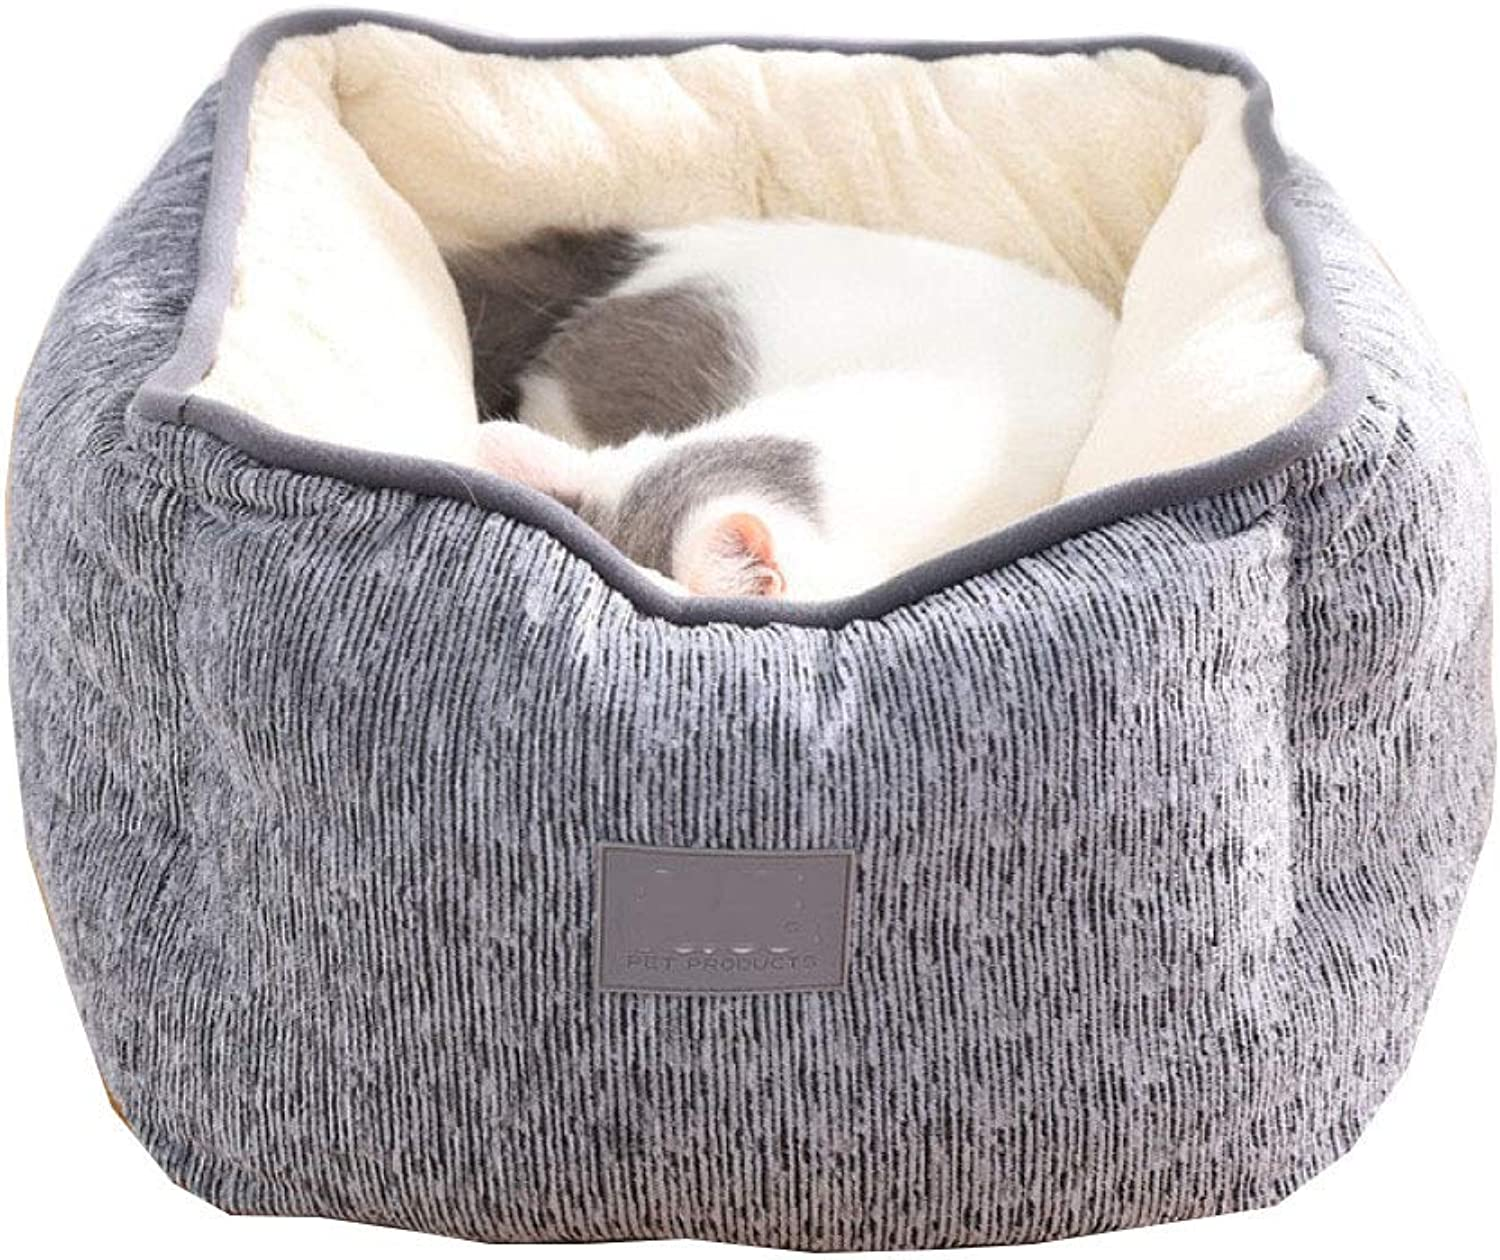 Cat Dog Kennel Square Warm Thick And Comfortable Breathable High Backrest Autumn And Winter Small Pet Dog Sleeping Mat,2 colors,Grey45  45  23cm